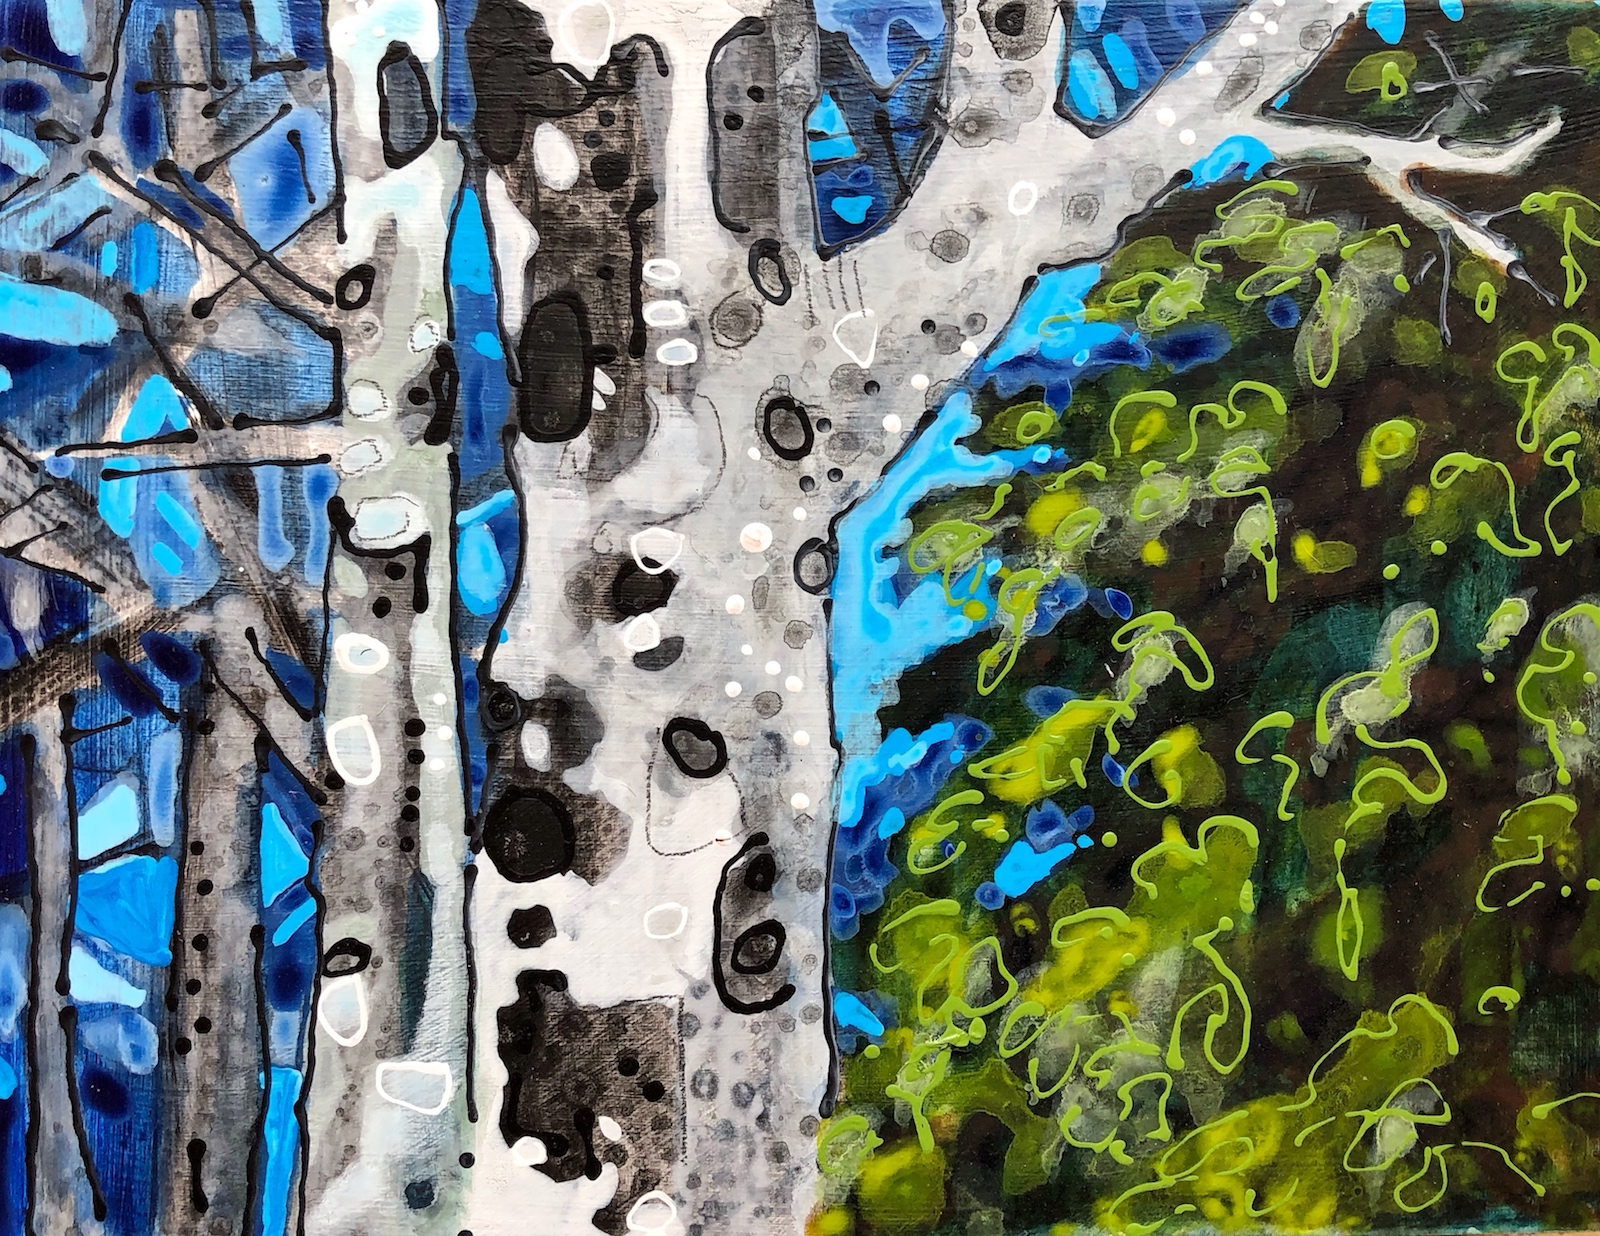 Backcountry Trees No13 painting by Lance Whitner created in her cool little studio in Steamboat Springs located in the Colorado Rocky Mountains